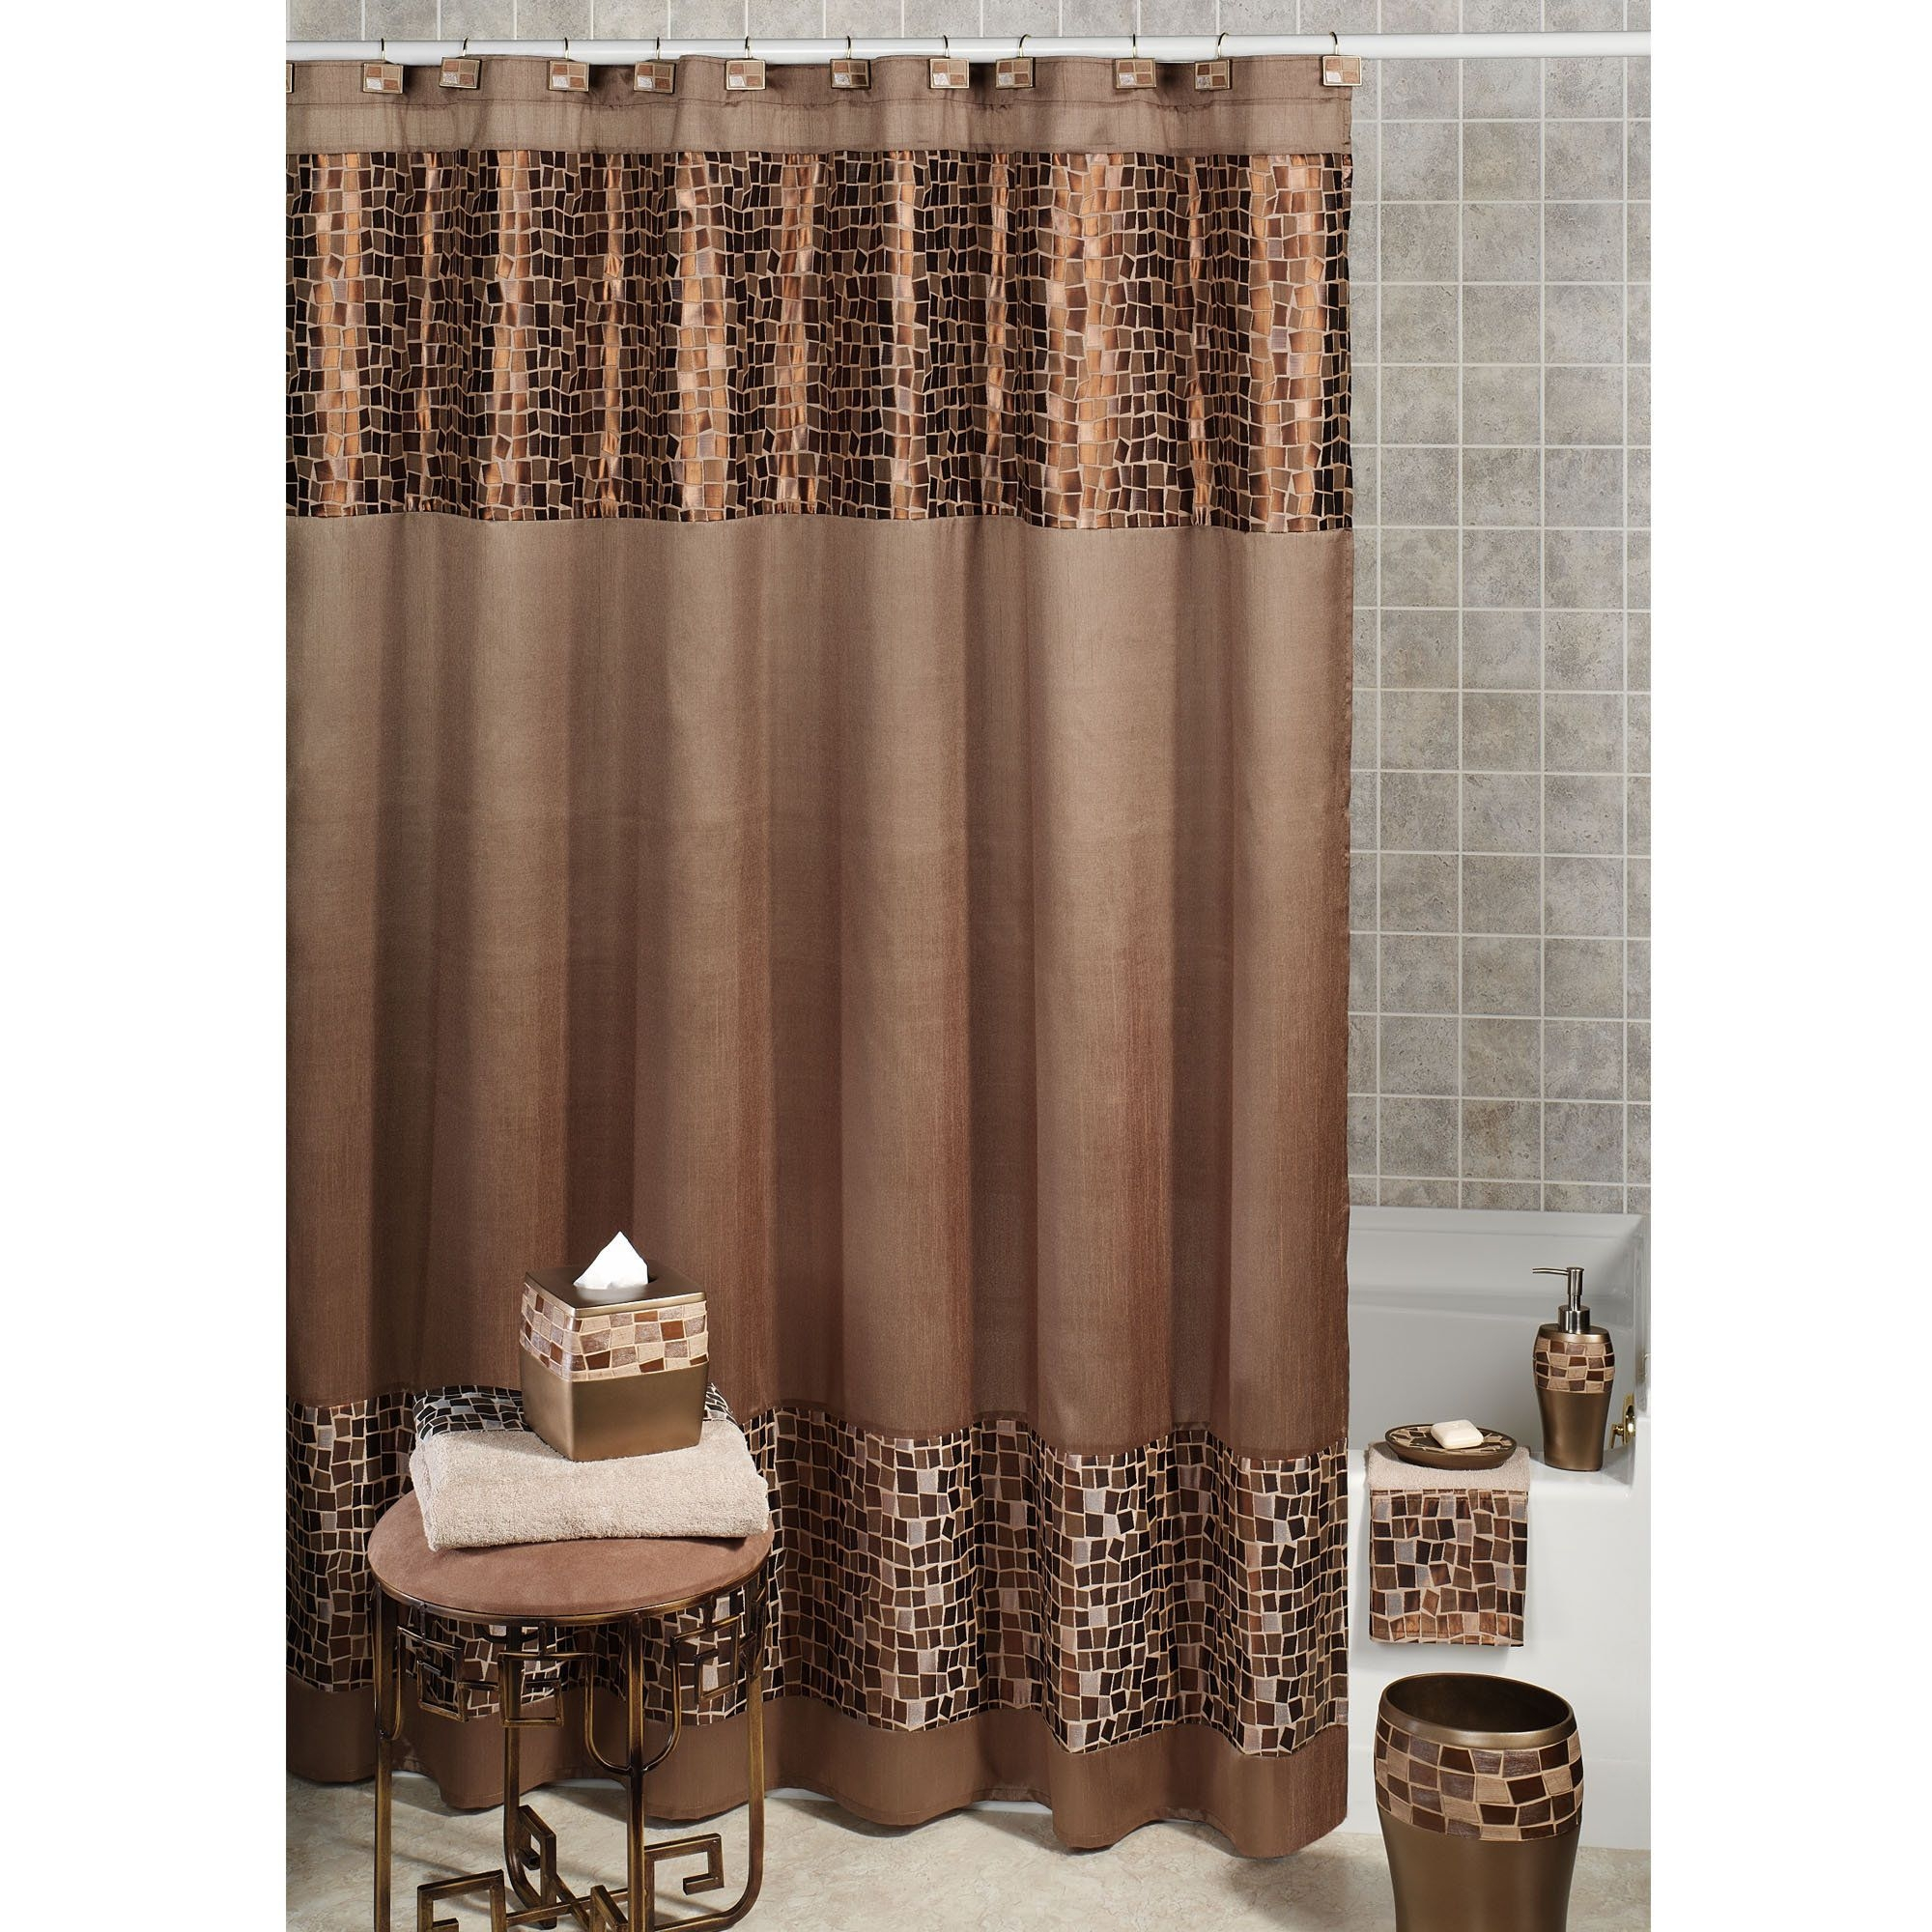 fancy for curtains new picture tfile and of best popular marvelous concept bath stunning curtain shower style image trends